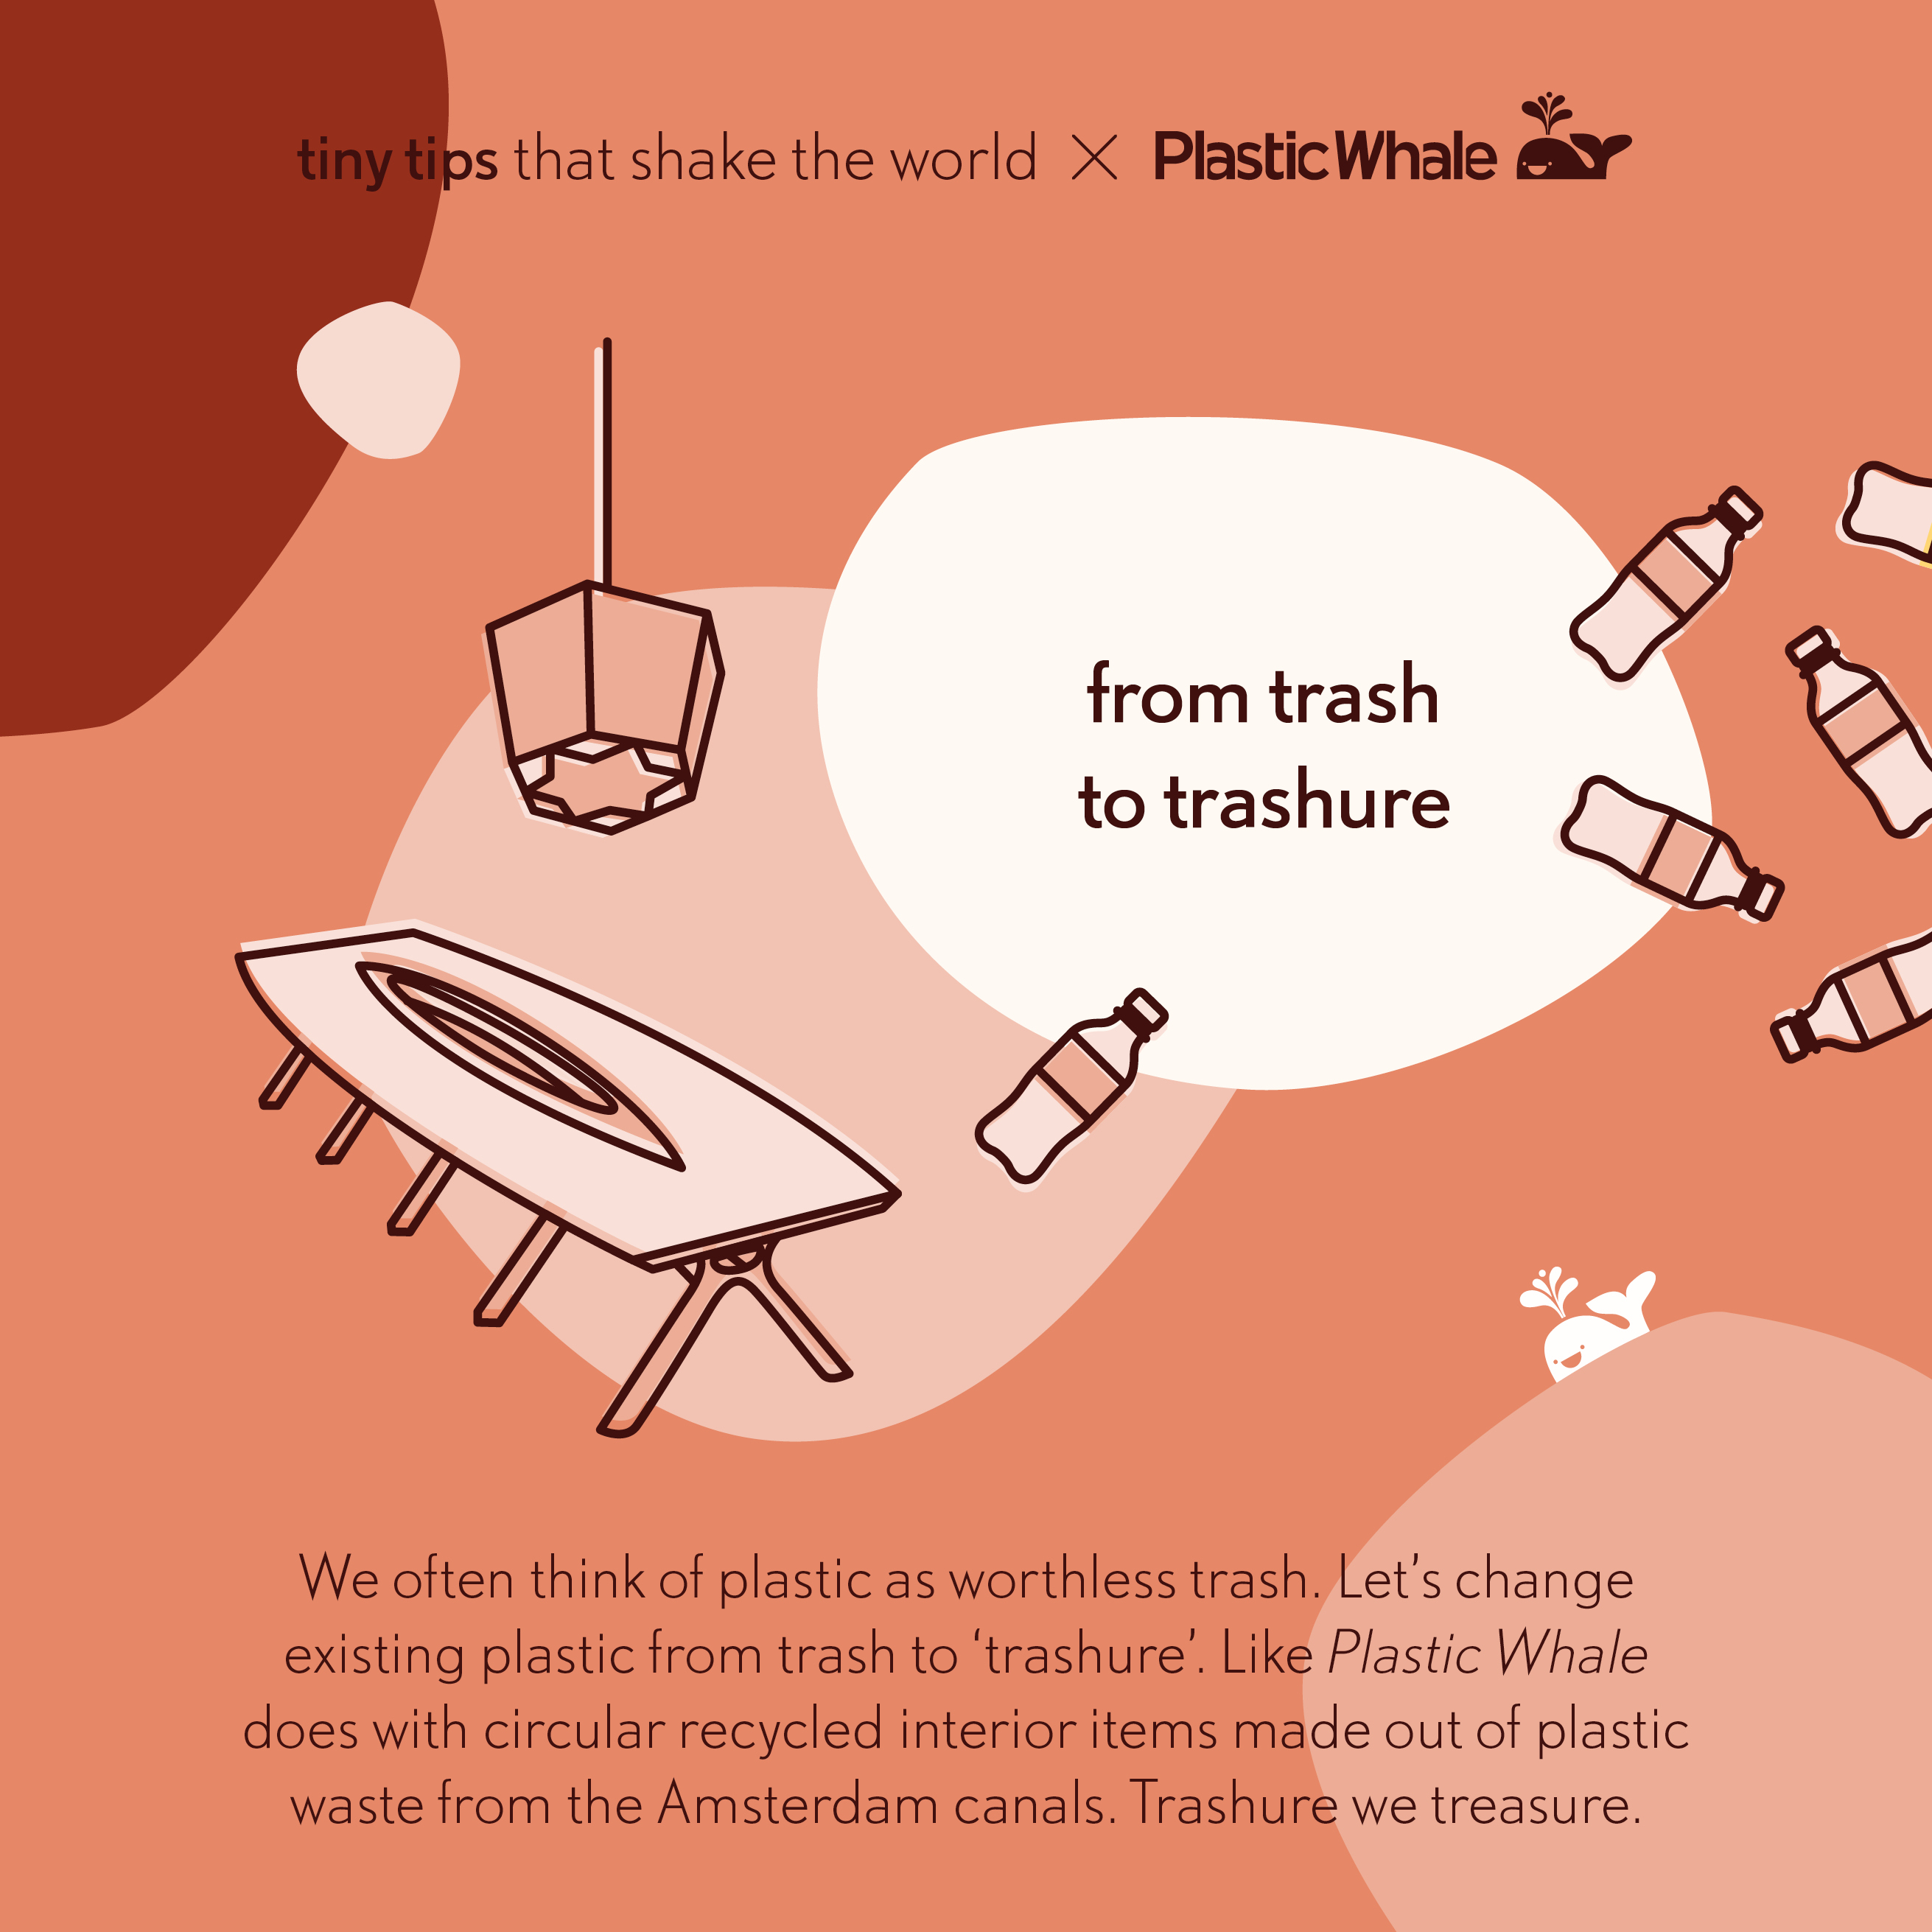 From trash to trashure - Tiny tips that shake the world X Plastic Whale